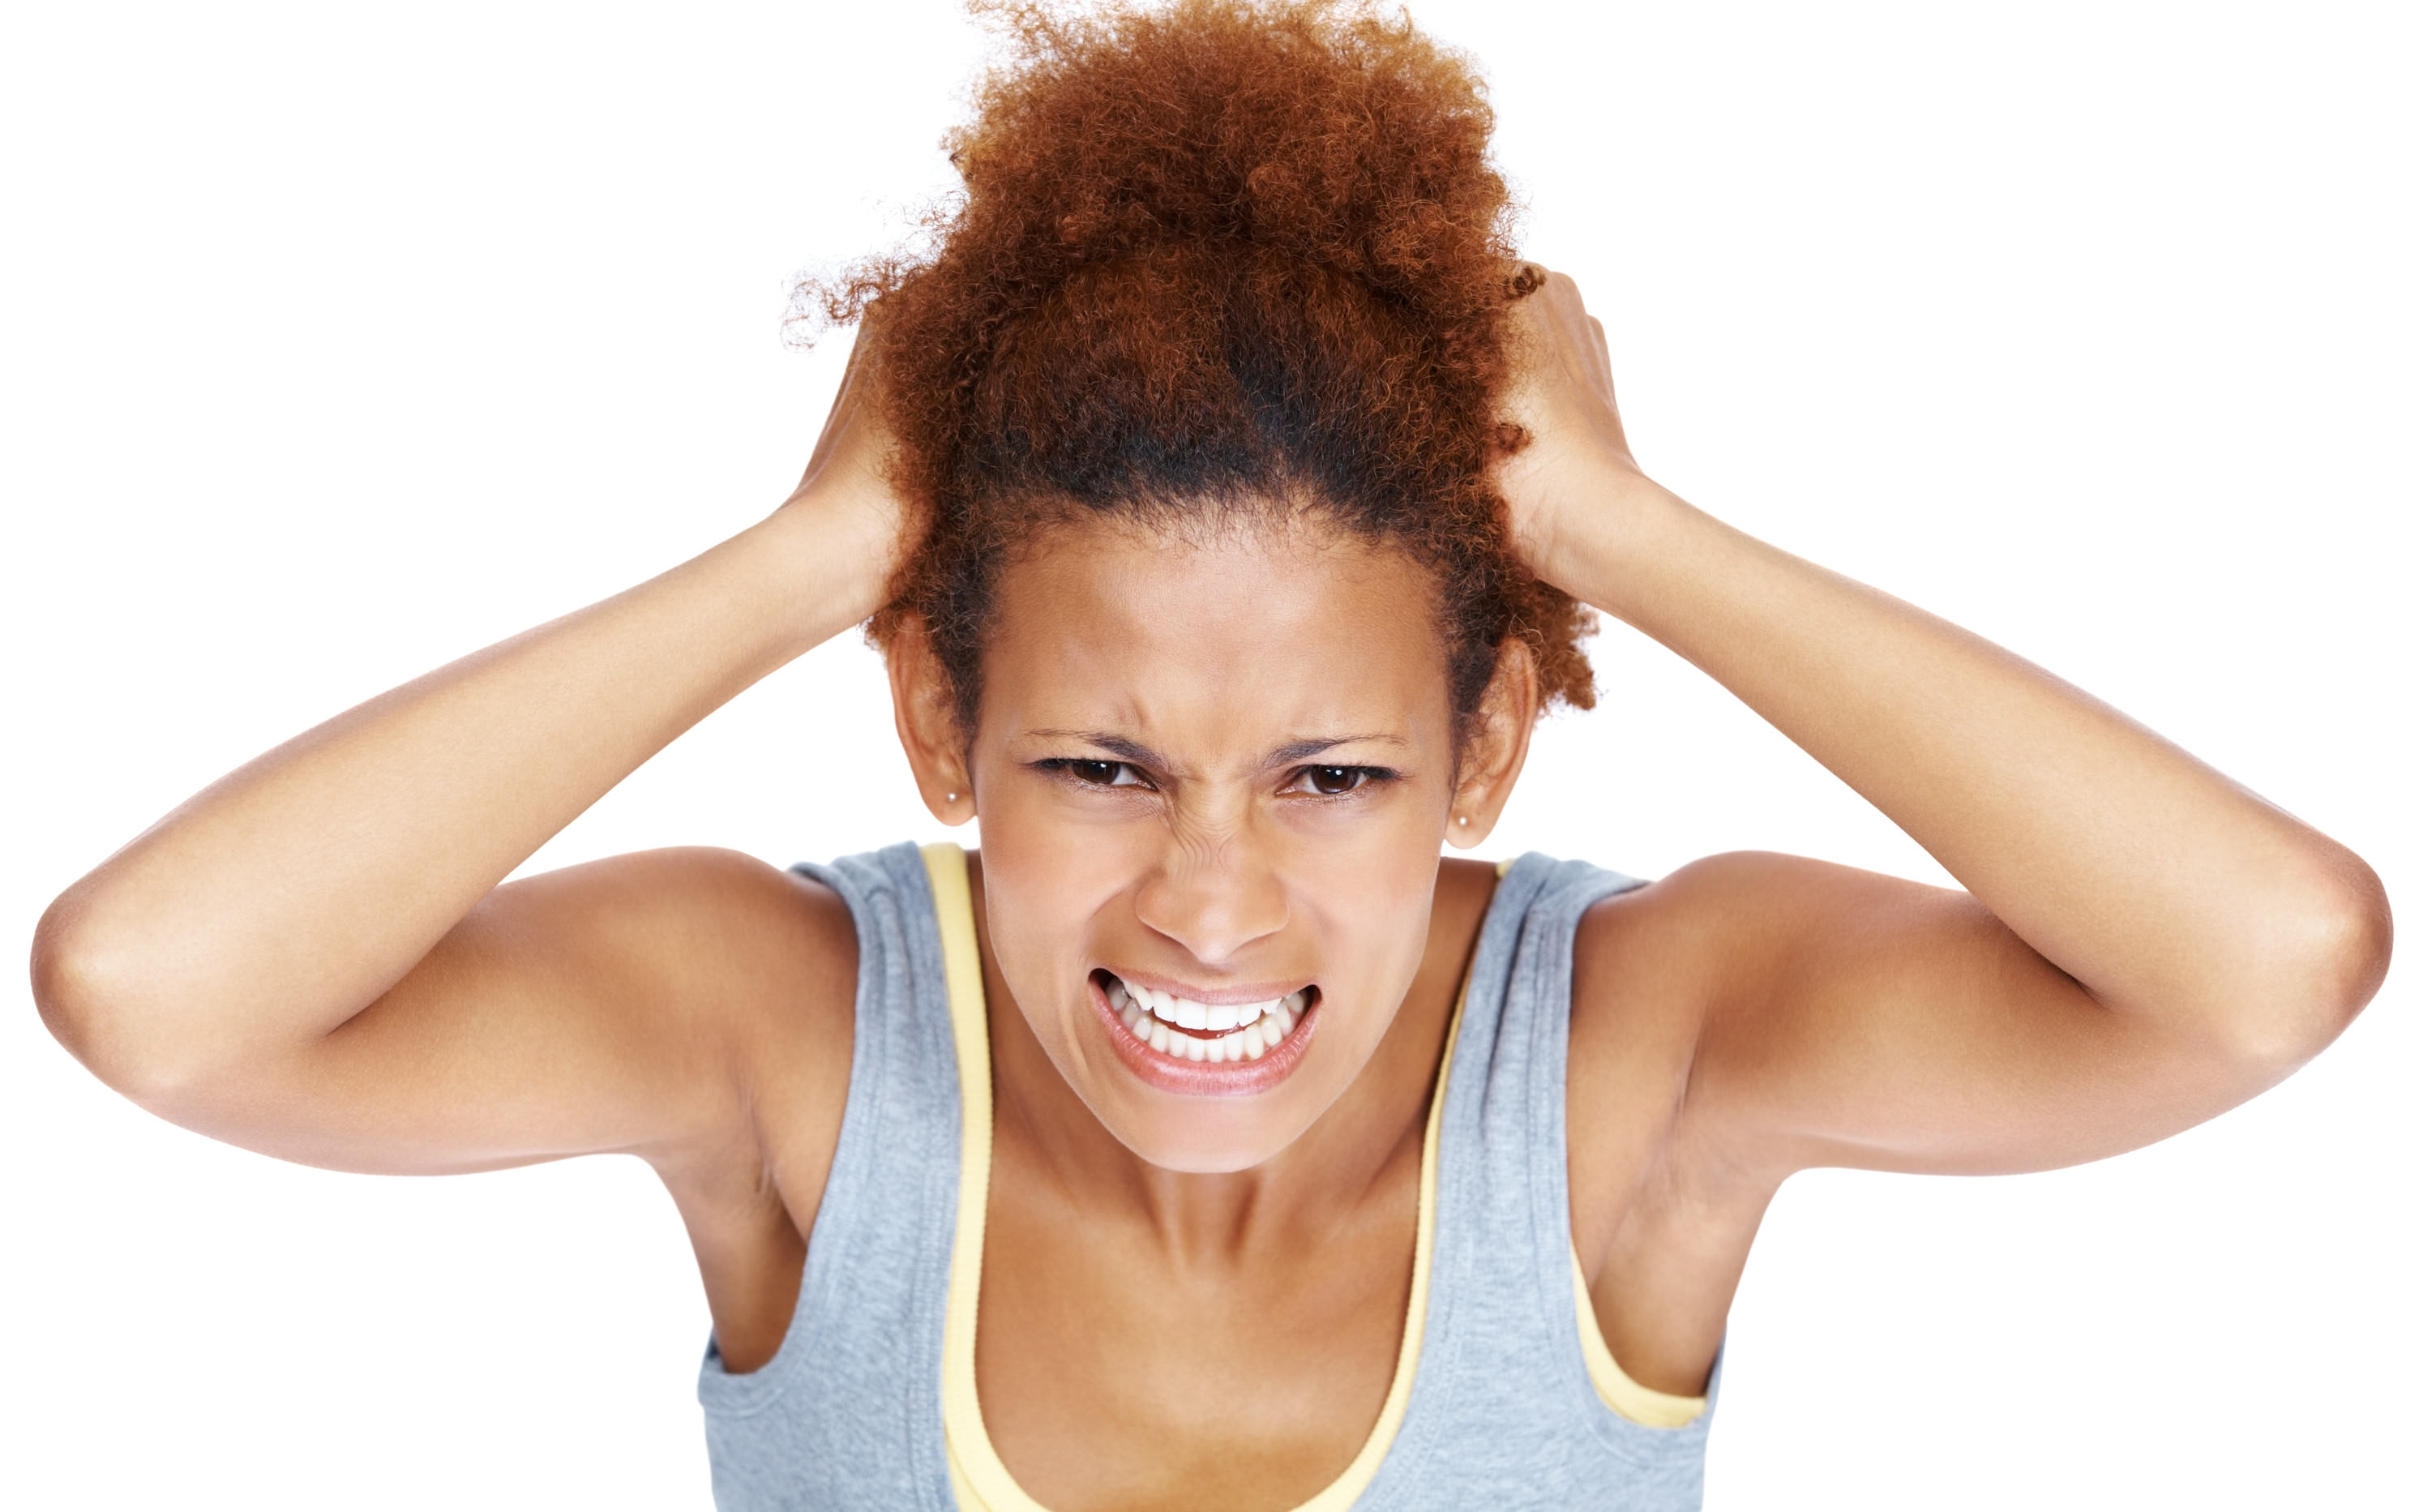 Home 187 posts 187 articles 187 hair styles 187 different hairstyles - 4 Tips To Clear Up Your Itchy Scalp